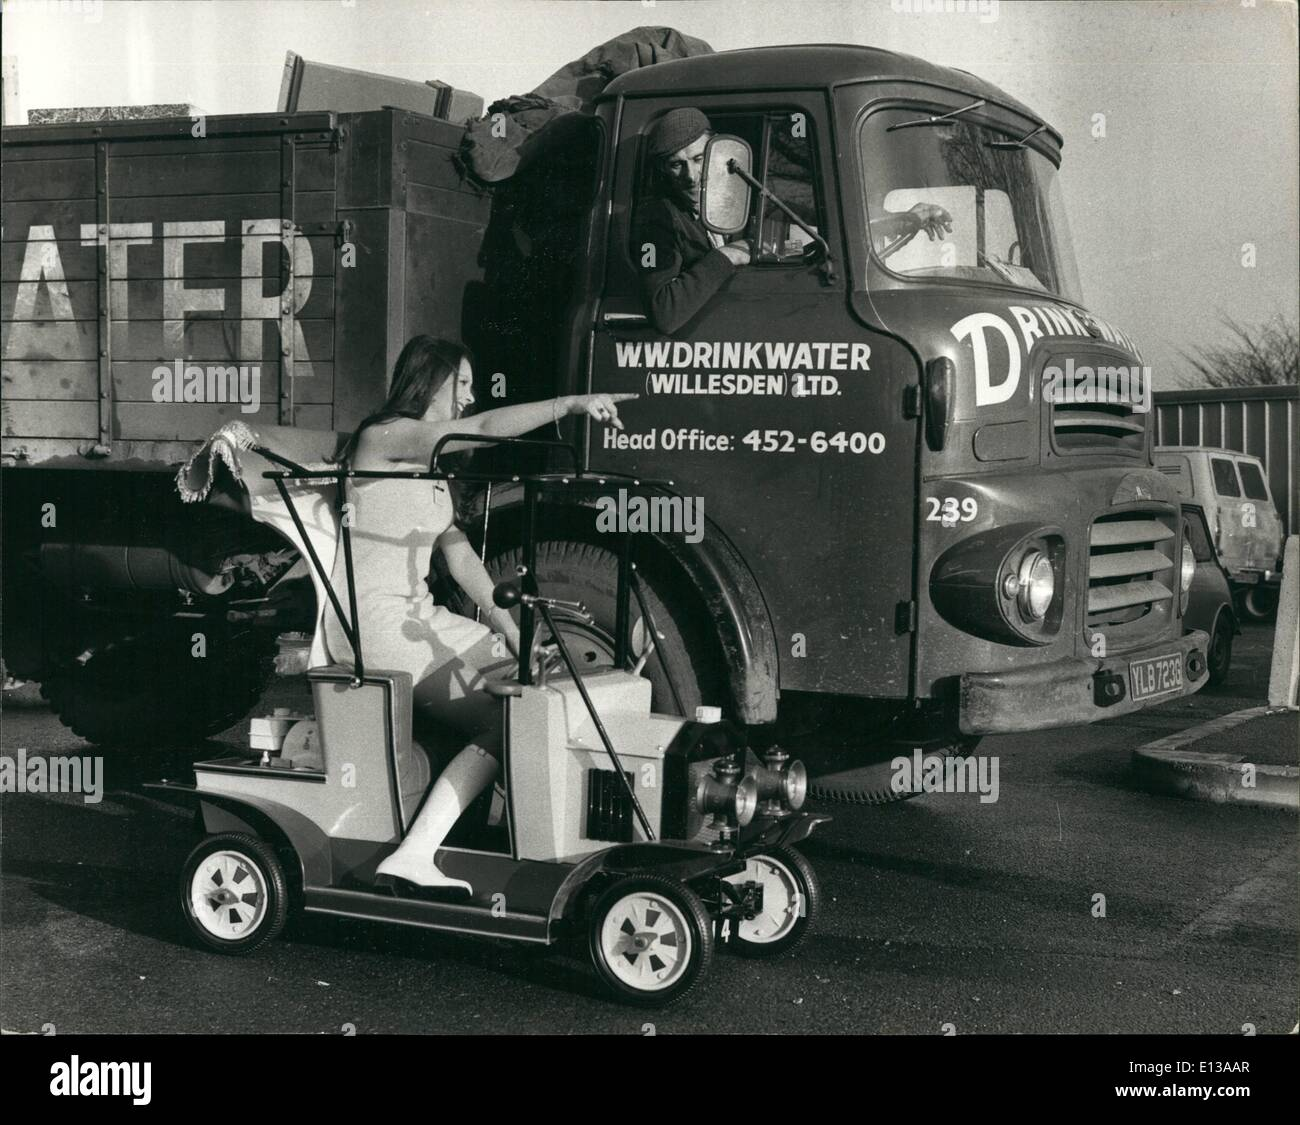 Feb. 29, 2012 - Amusement Trades Exhibition - A Petrol Driven Model Vintage Car For Children: Export buyers from - Stock Image